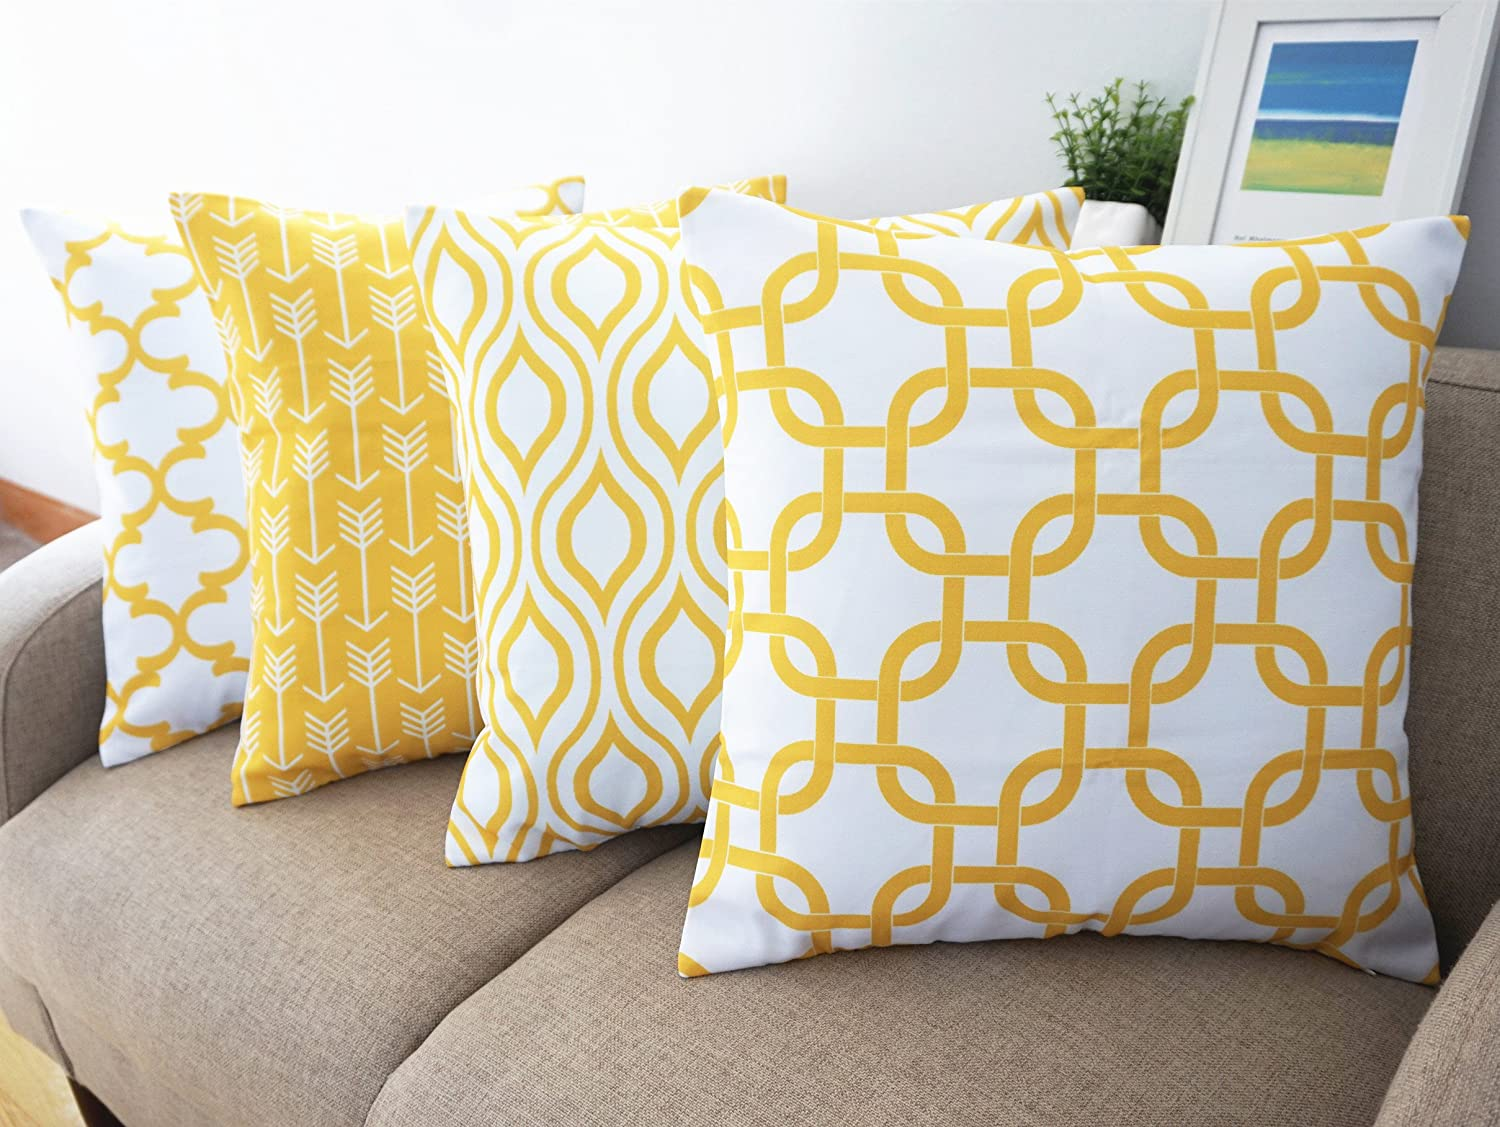 Amazon Com Howarmer Canvas Cotton Throw Pillows Cover For Couch Set Of 4 Lemon Yellow Accent Pattern 18 X 18 Inch Home Kitchen